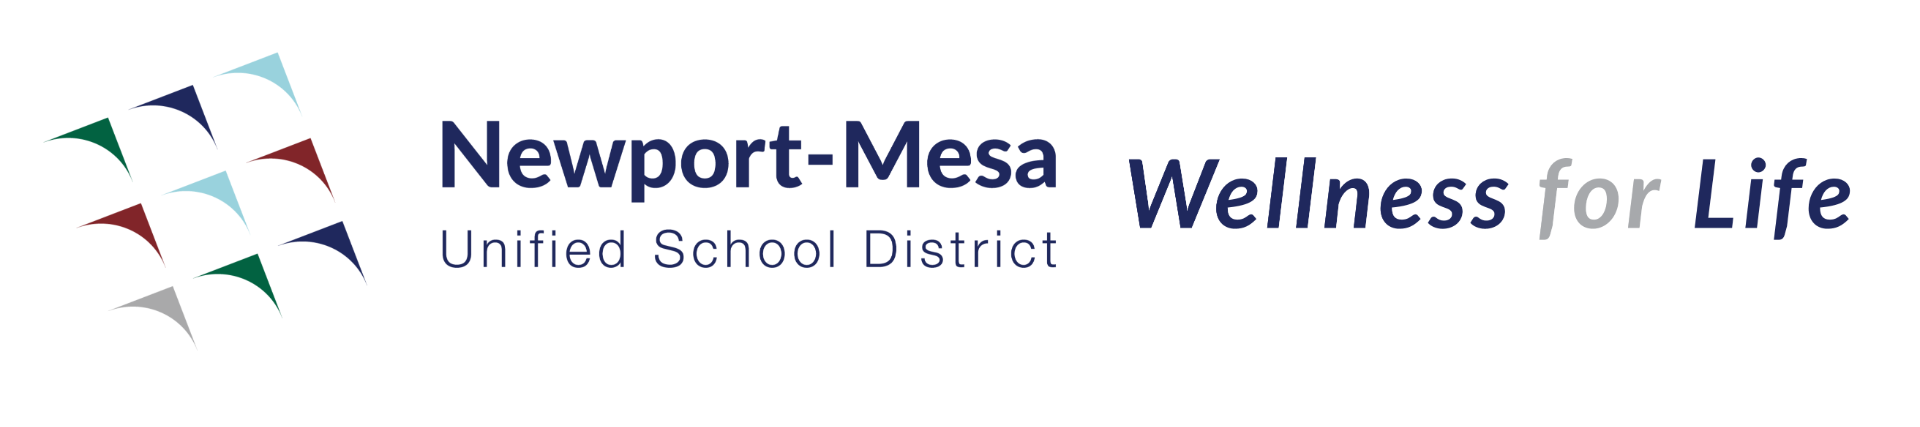 NMUSD Wellness for Life